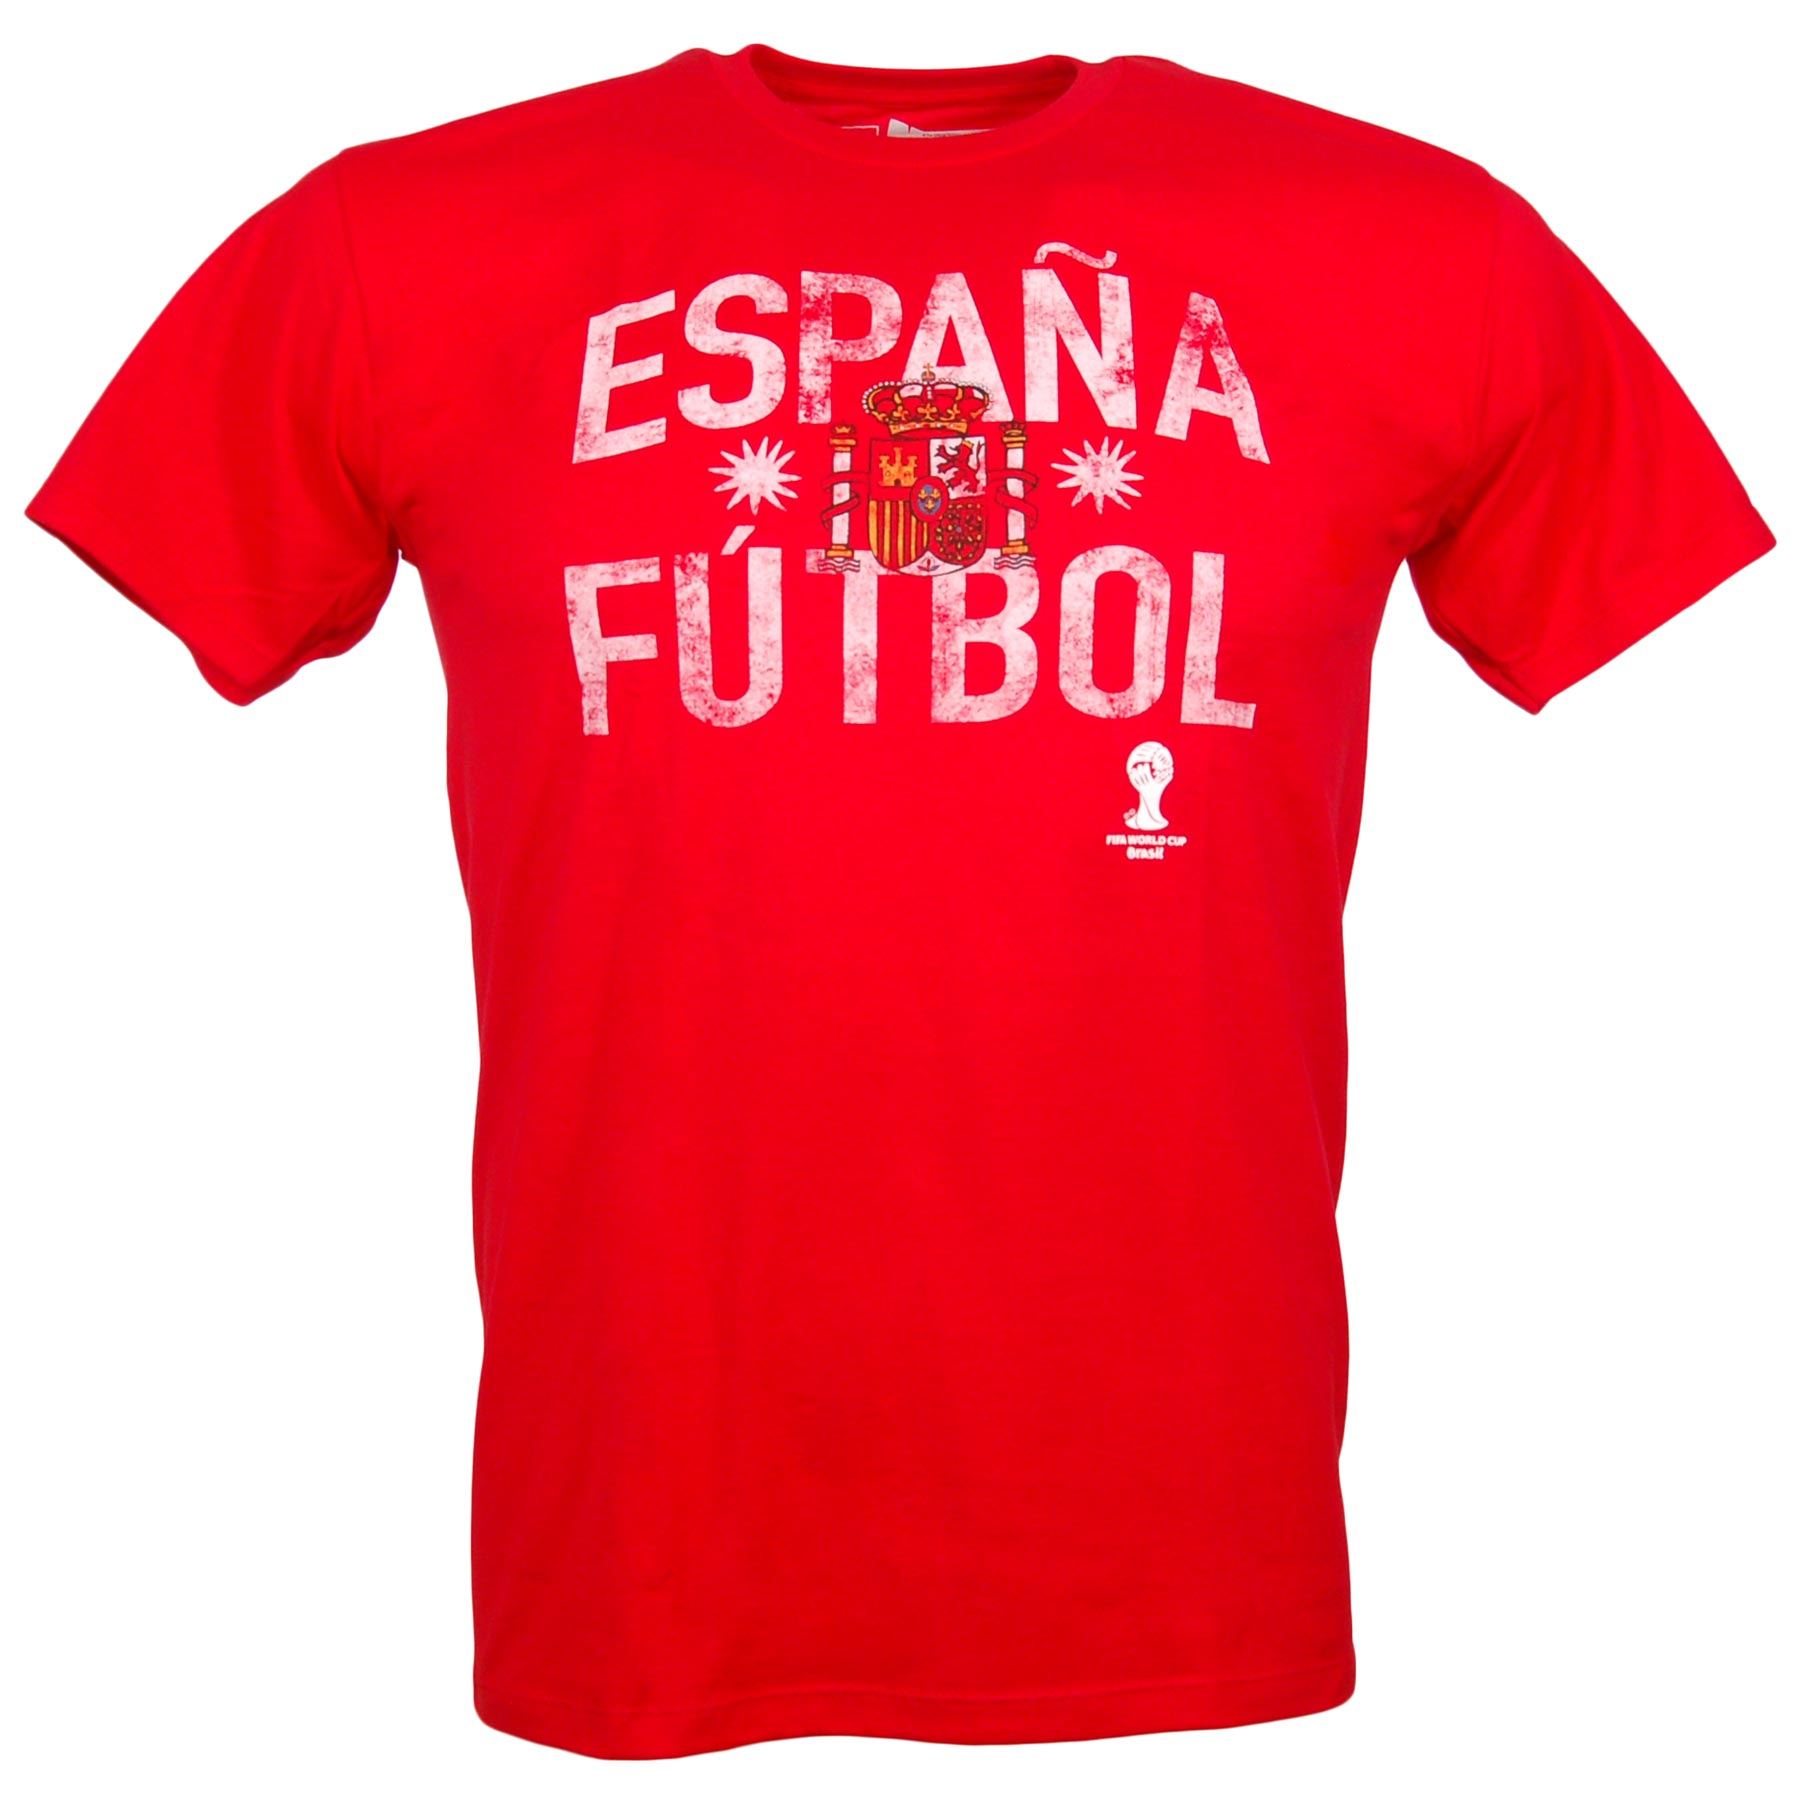 Spain 2014 FIFA World Cup Edison T-Shirt